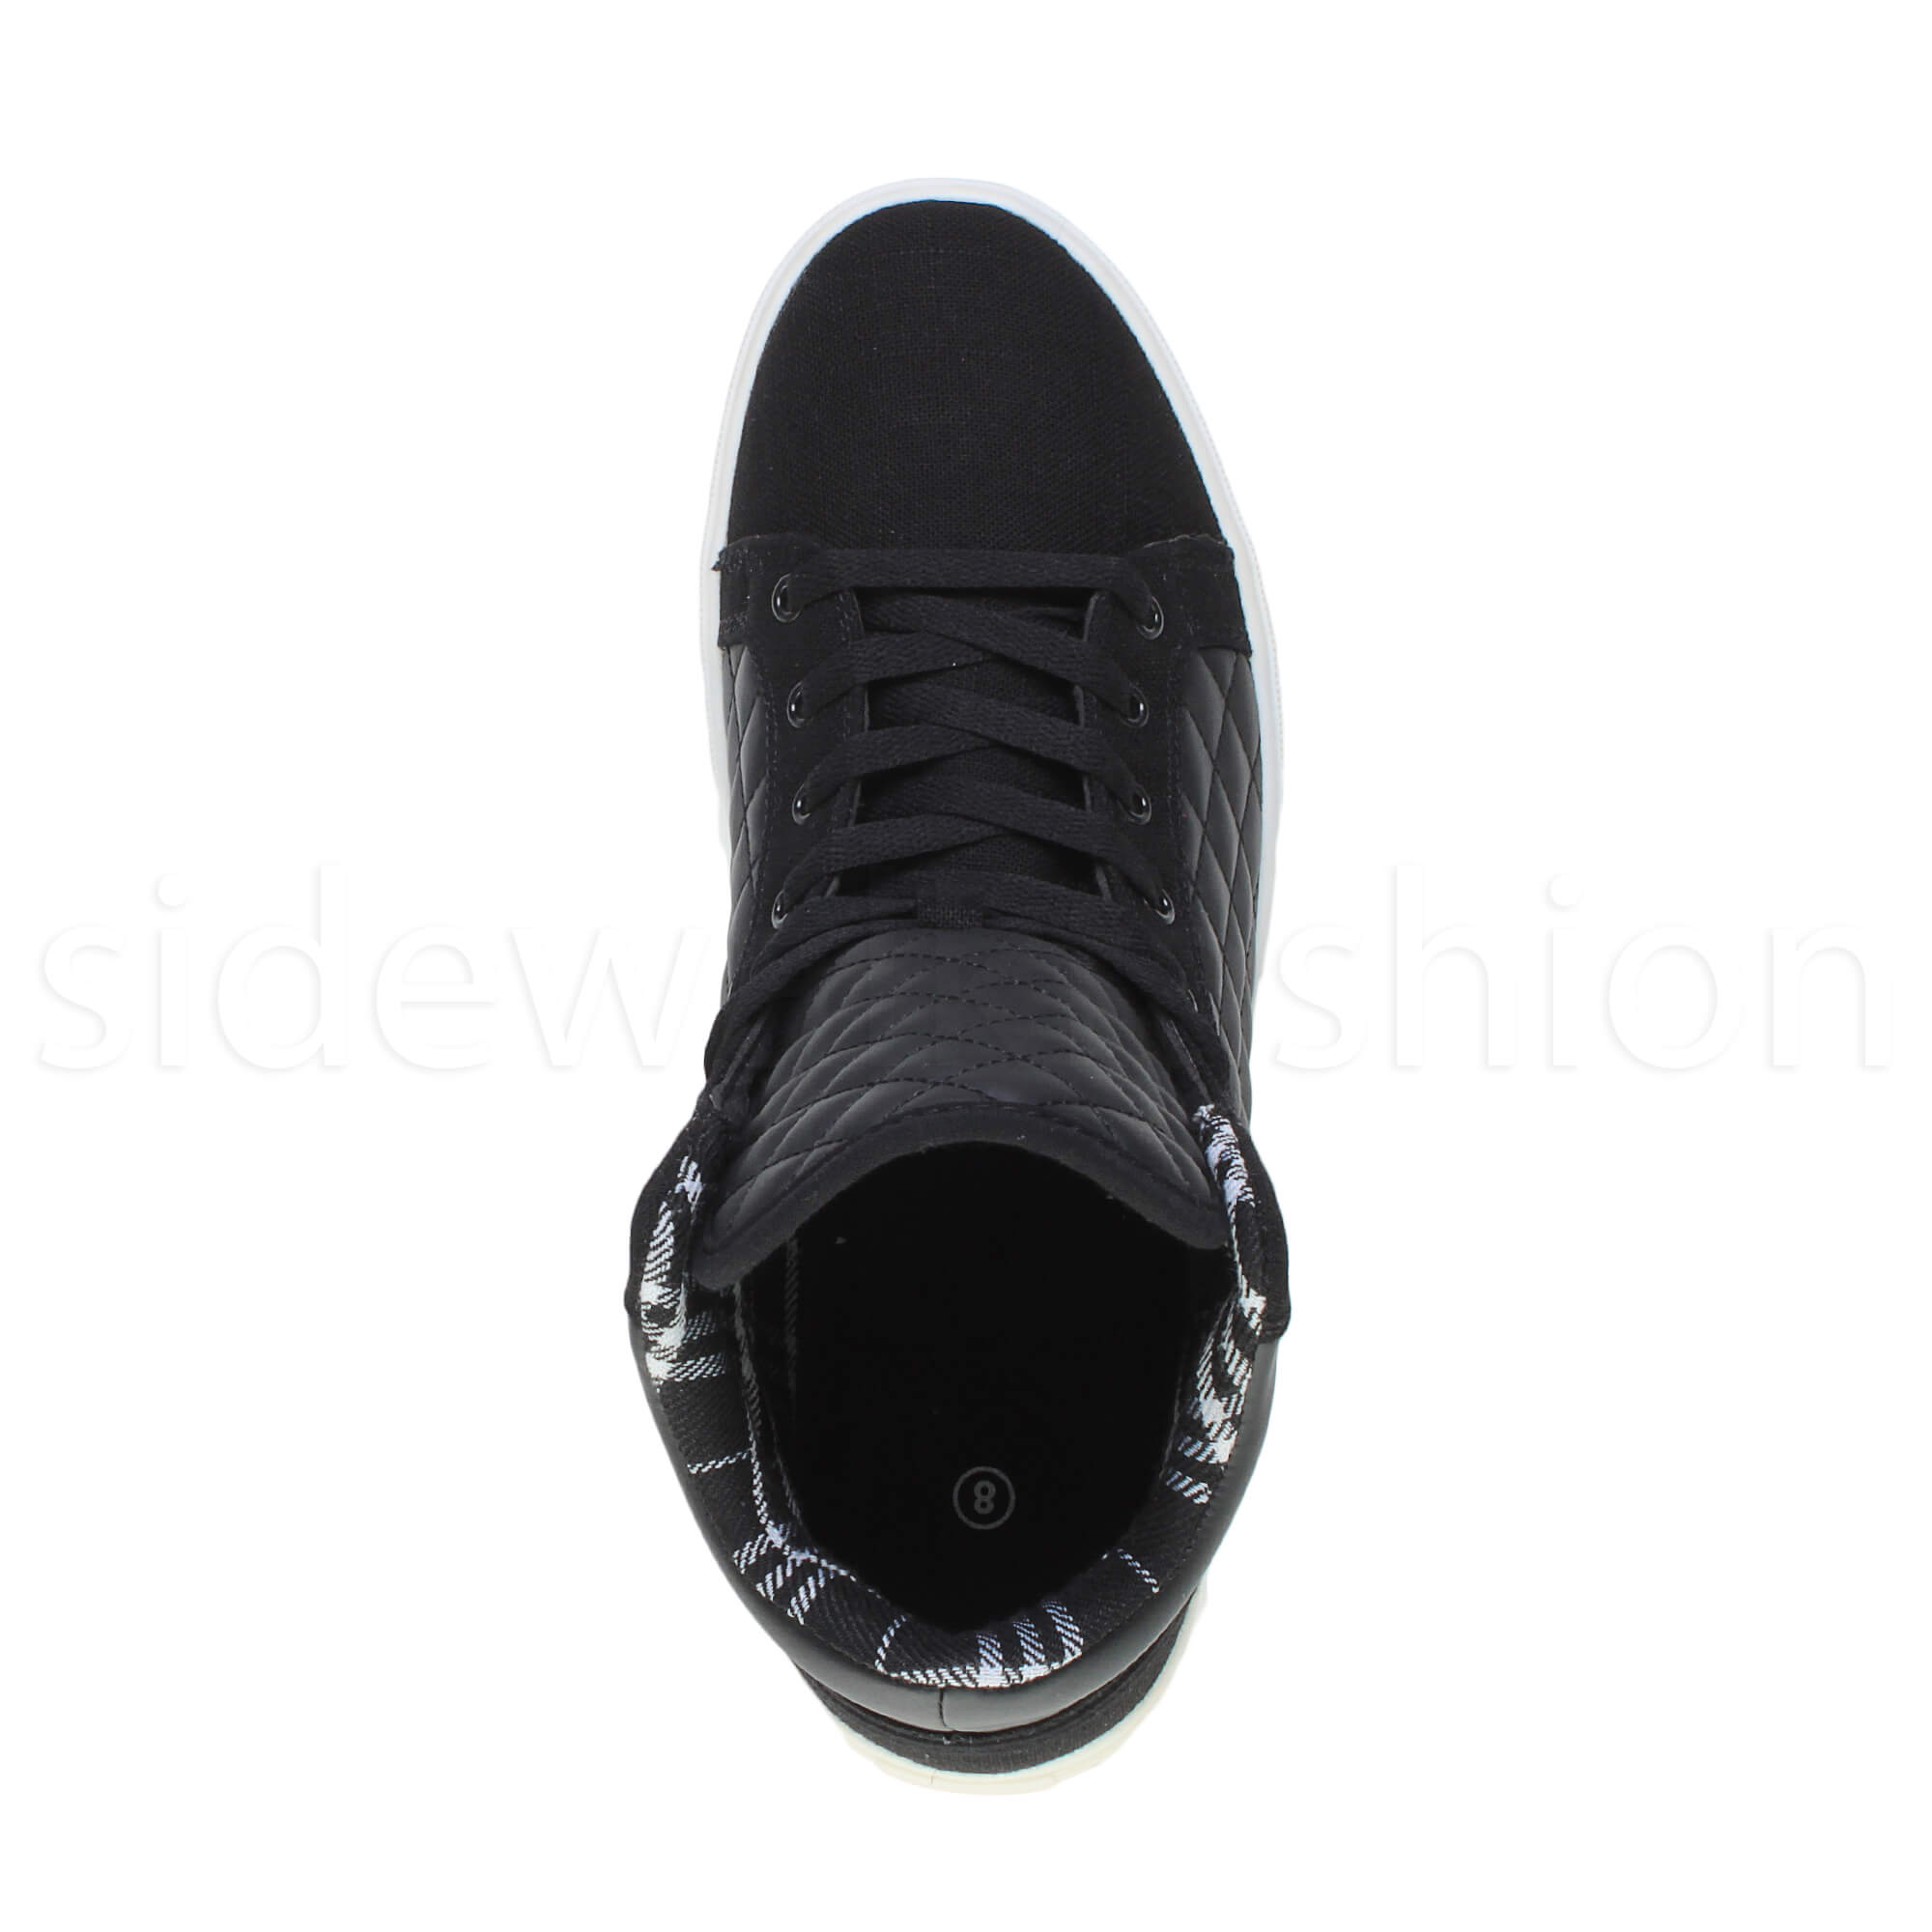 Mens-flat-lace-up-quilted-casual-hi-high-top-ankle-boots-trainers-sneakers-size thumbnail 6